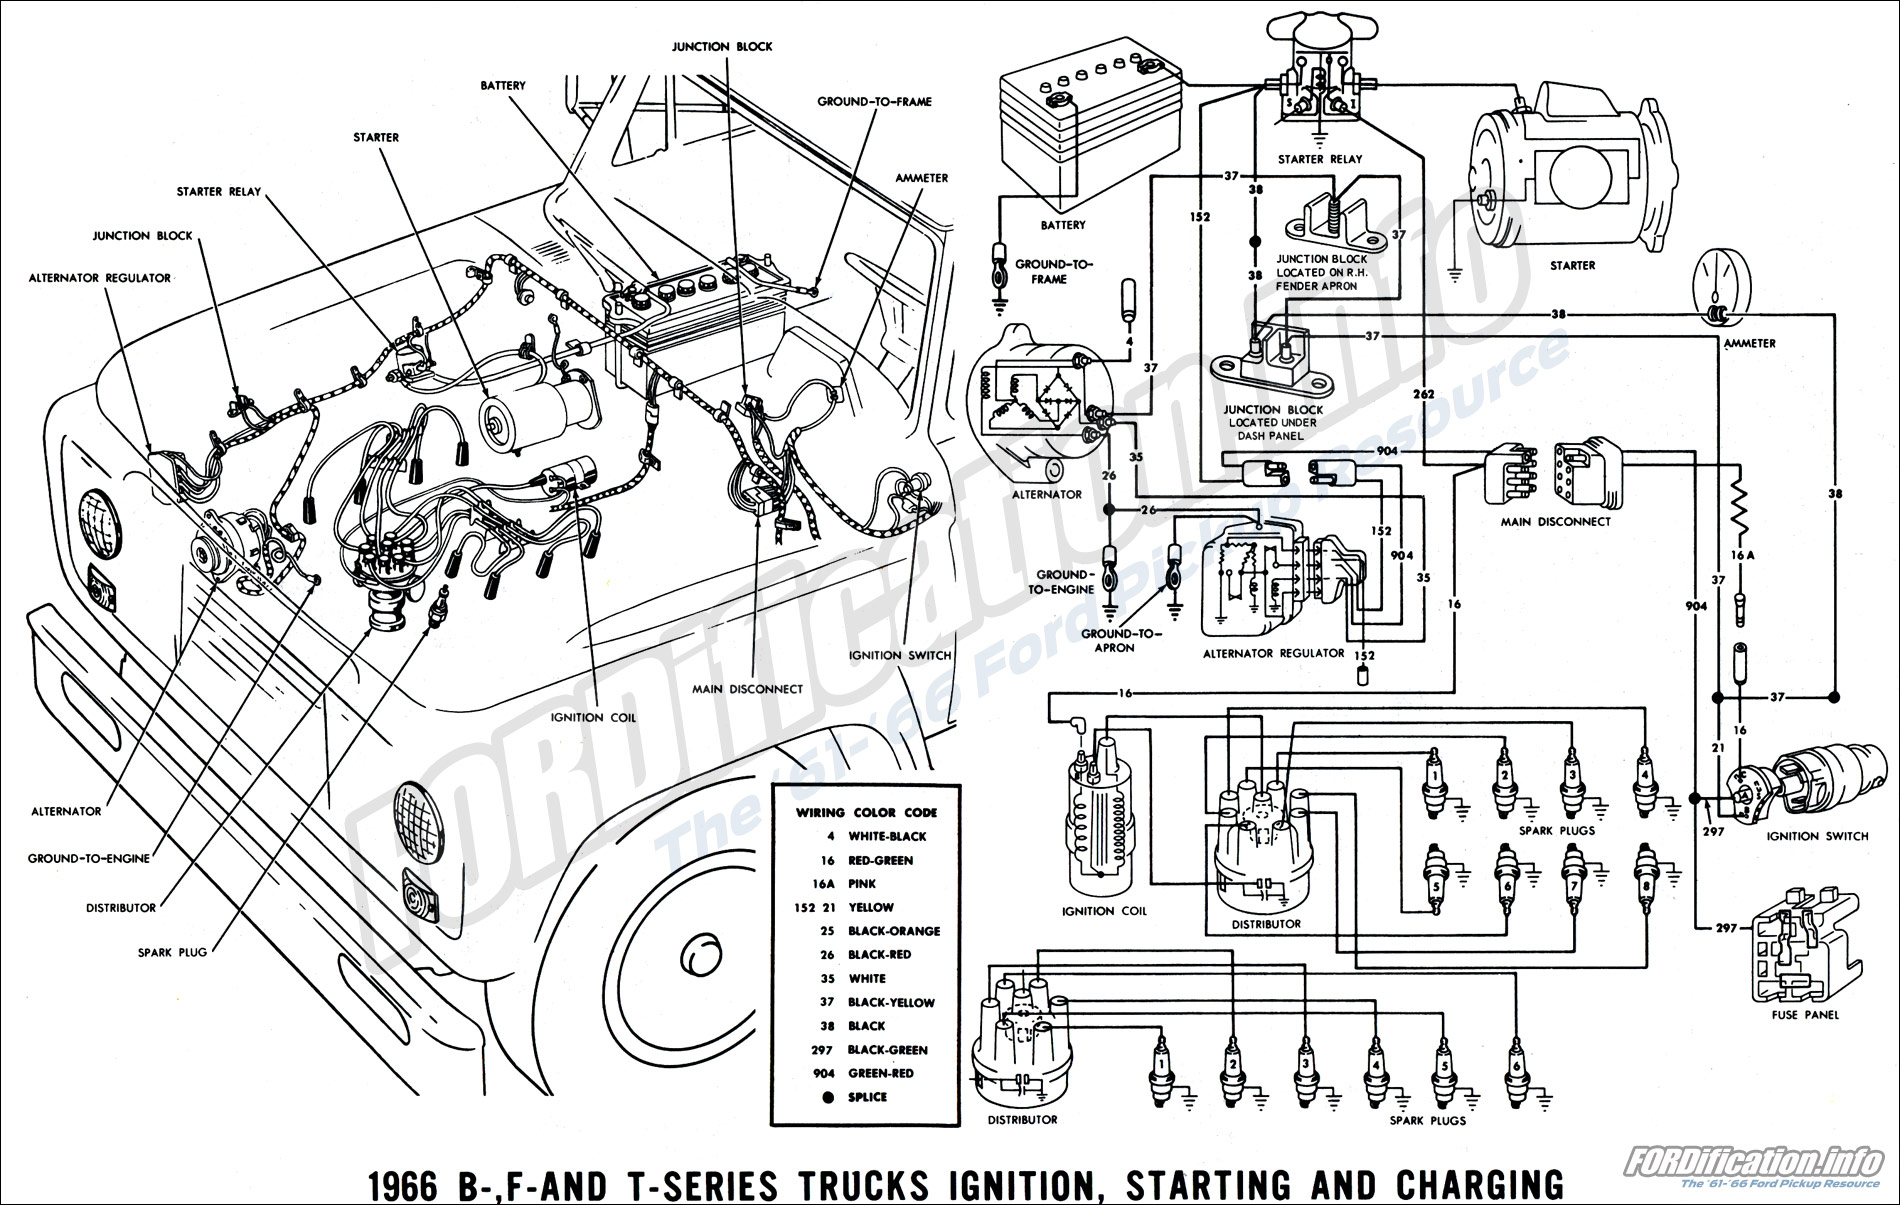 1966 ford truck wiring diagrams fordification info the '61 '66 ford truck radio wiring diagram 1966 b , f and t series ignition, starting and charging